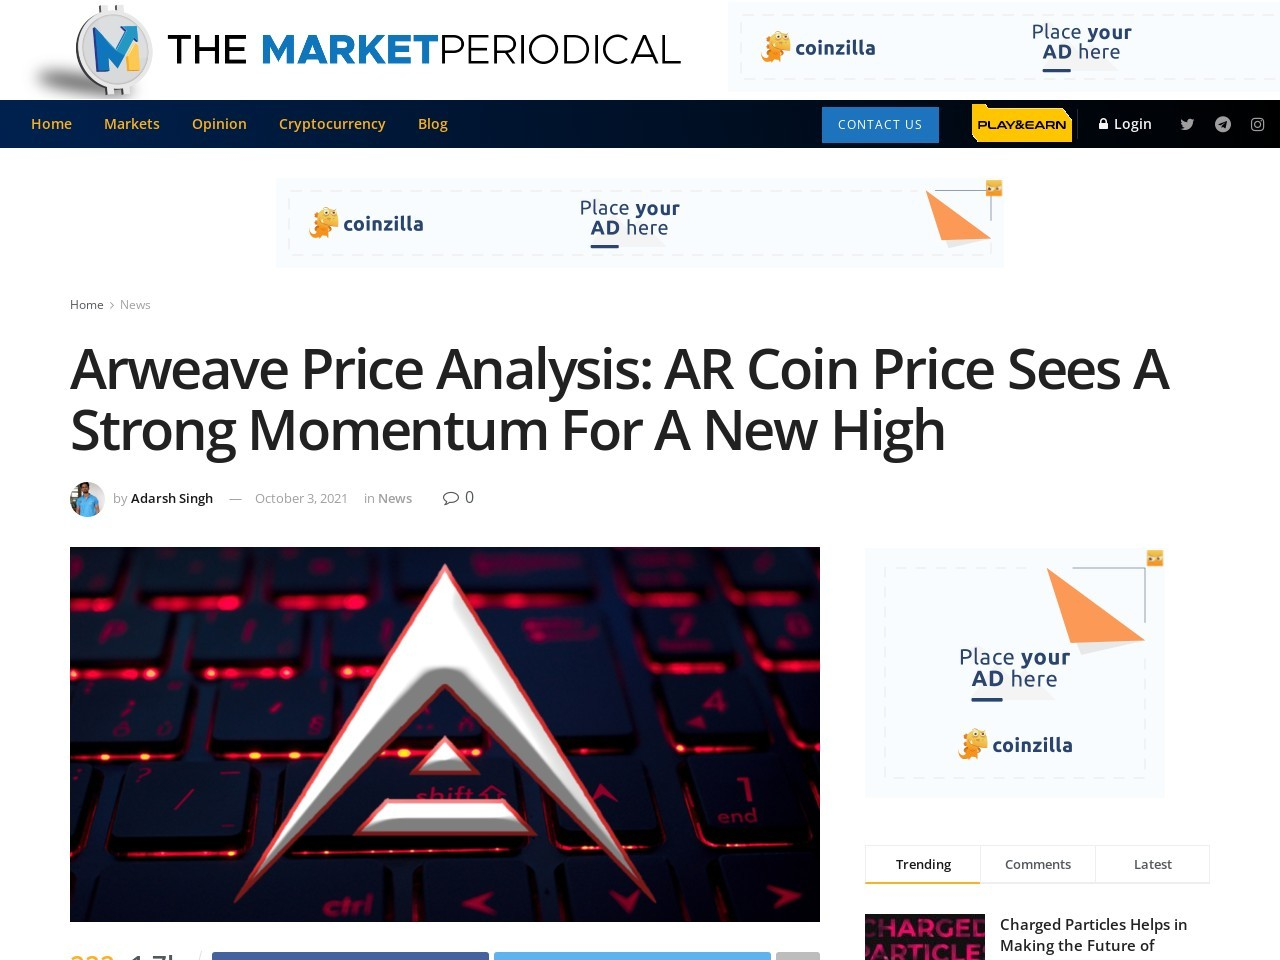 Arweave Price Analysis: AR Coin Price Sees A Strong Momentum For A New High – Cryptocurrency News – The Market Periodical